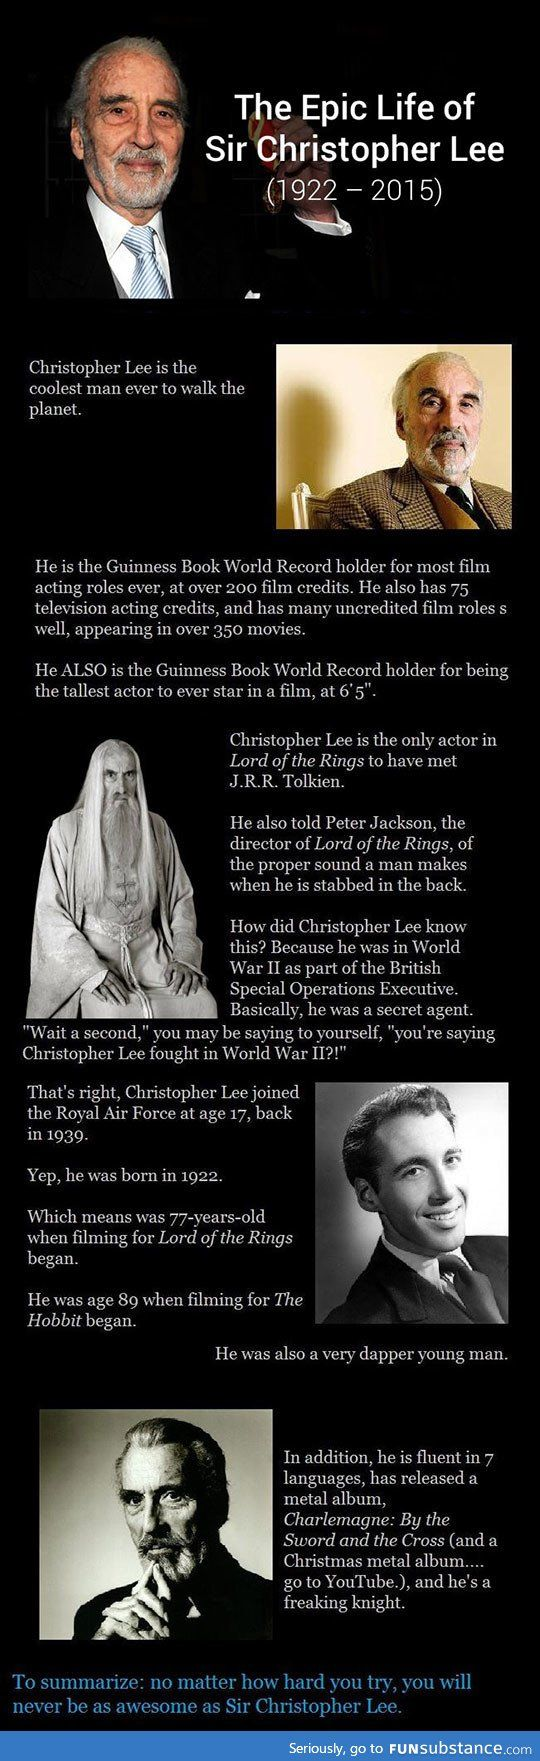 The awesome Christopher Lee, R.I.P. you were amazing!